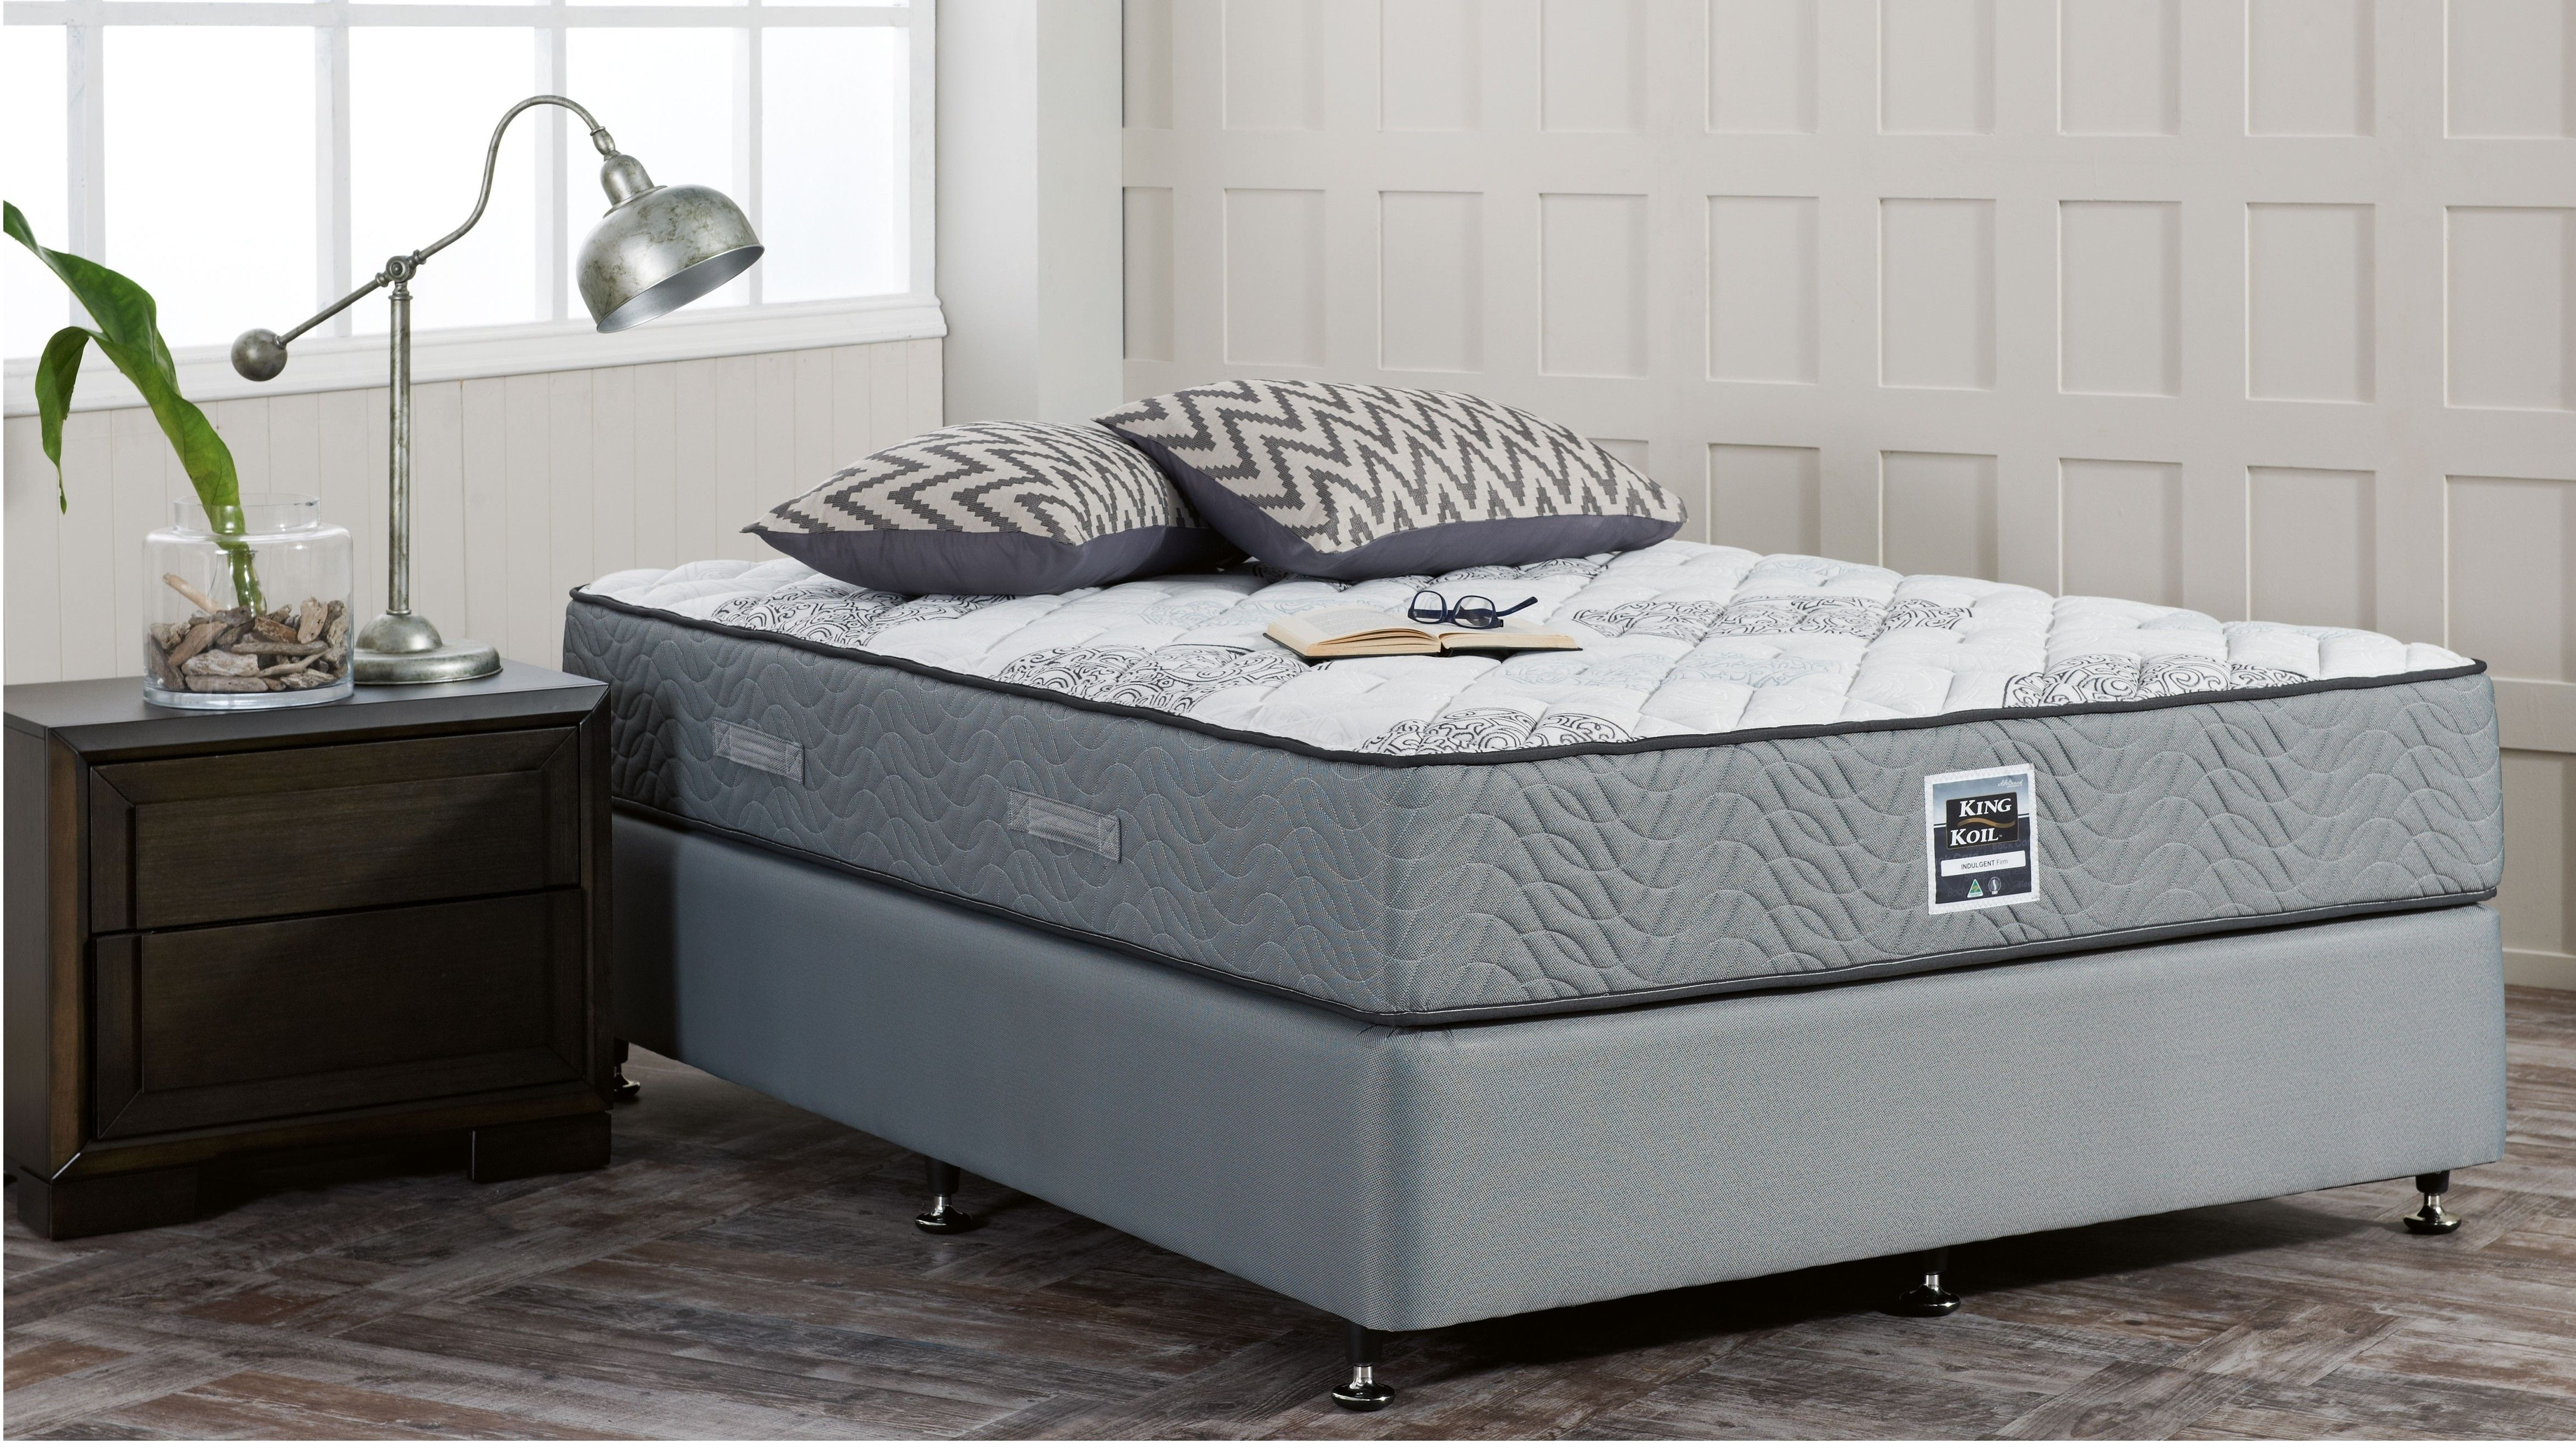 Firm Feel Comfort And Performa Edge Support Technology Combine To Ensure The King Koil Chiro Indulgent Firm Queen Ensemble P Mattress Master Bedroom Home Decor